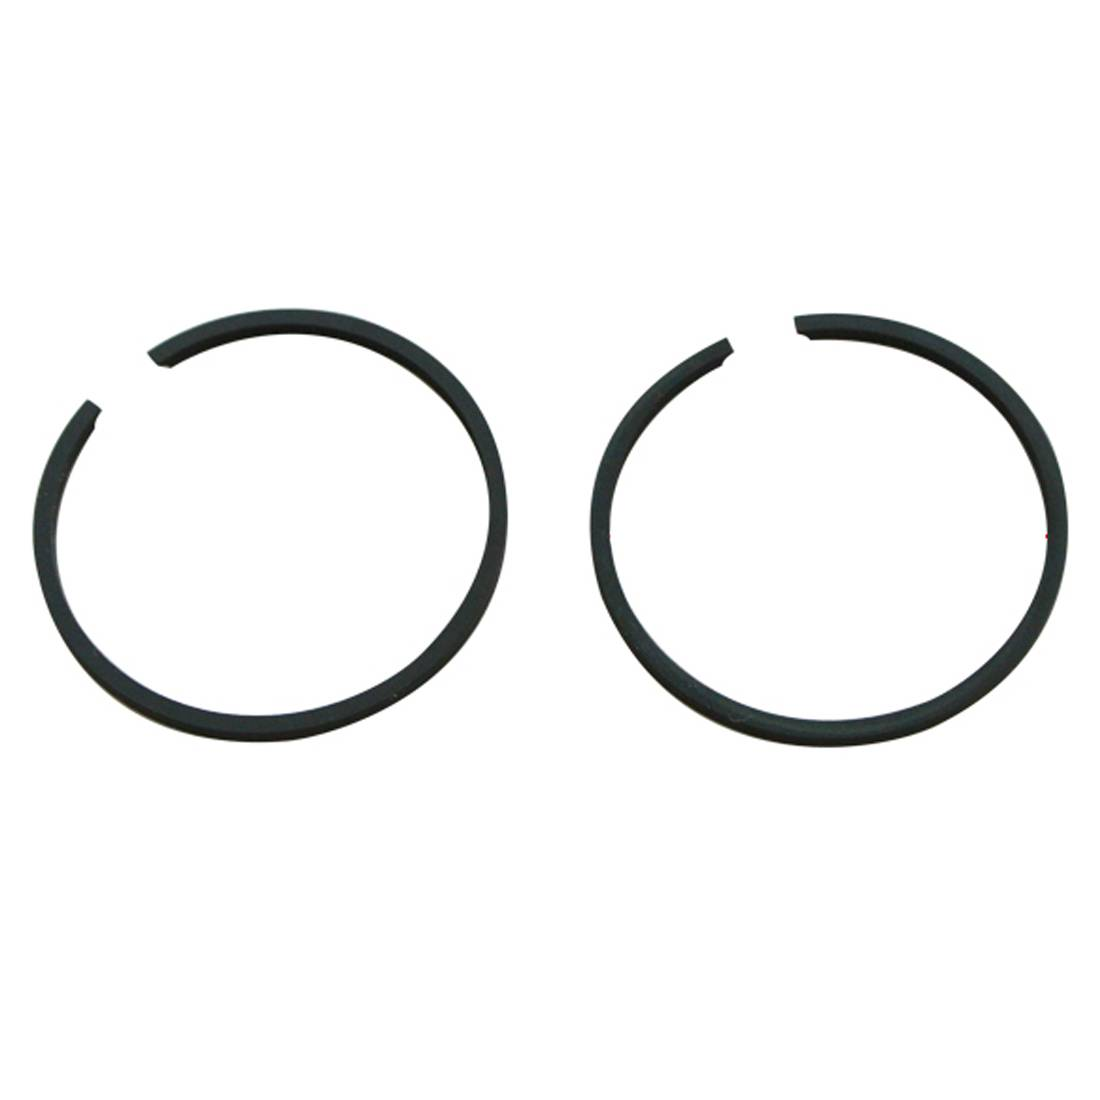 39mm Piston Rings Fit 49cc 50cc Motorized Bicycle Motorised Bike 1 Pair In Pistons Amp Rings From